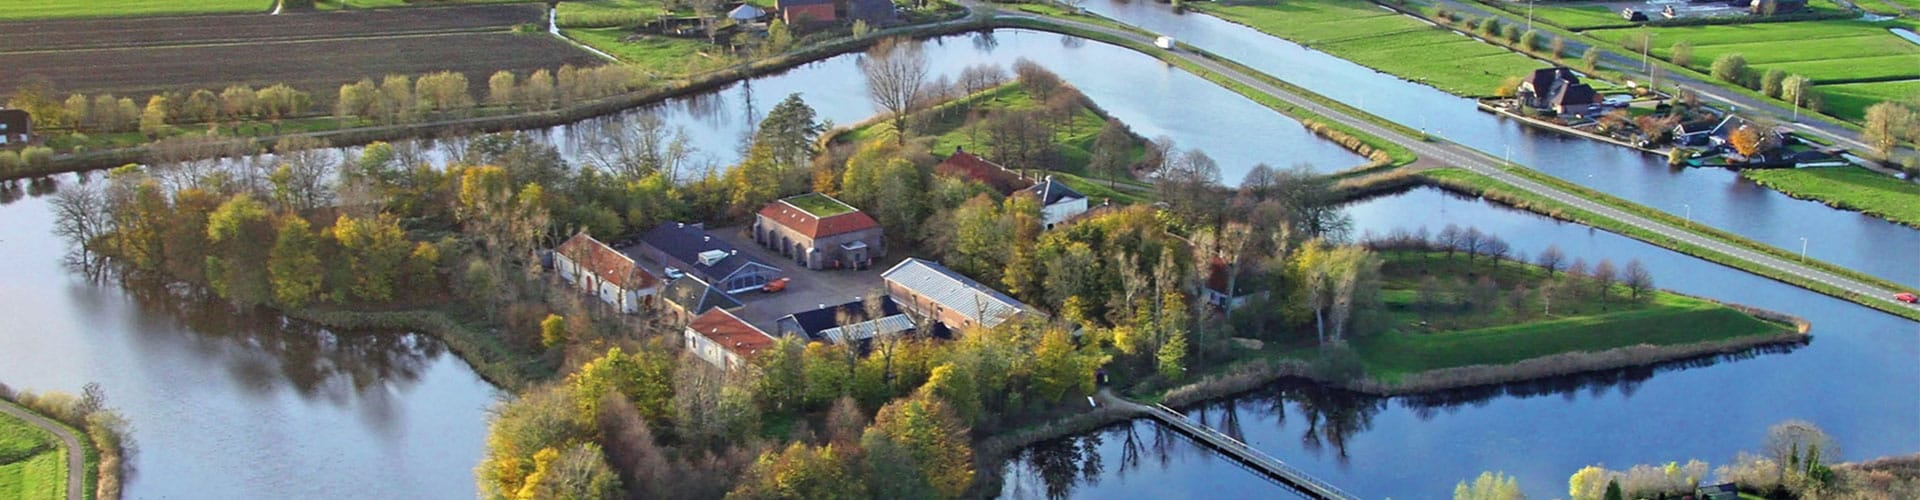 Fort Wierickerschans evenementenlocatie